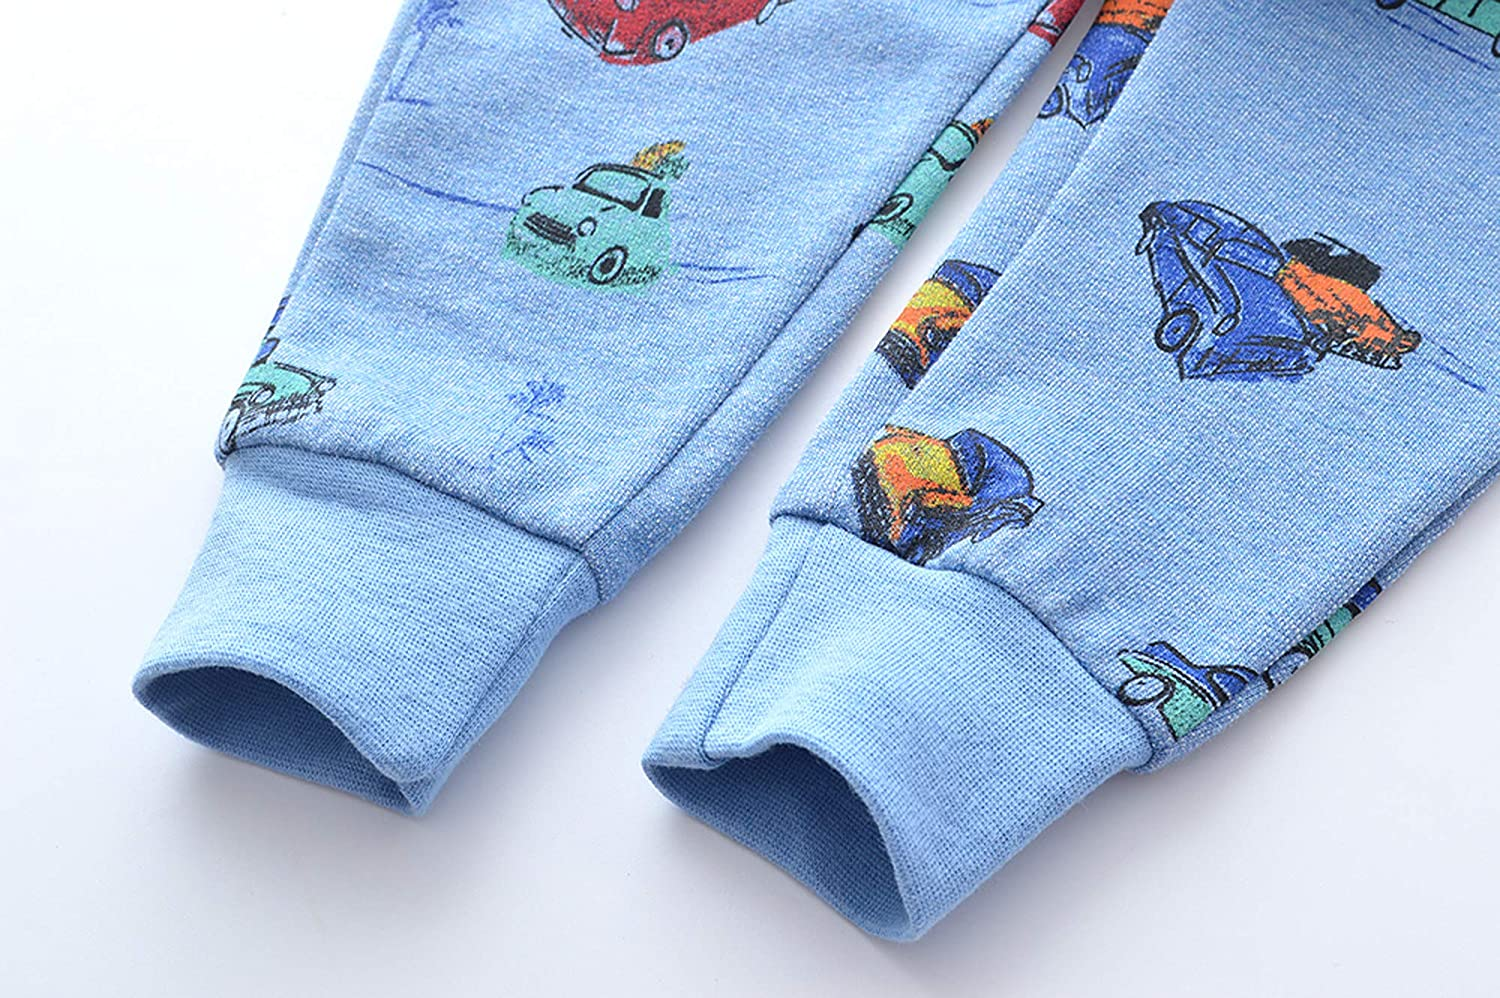 height110-120cm//42-46inch 6T , Blue /& Car HUAER/& Baby Boy Car Print Pants Drawstring Elastic Sweatpants